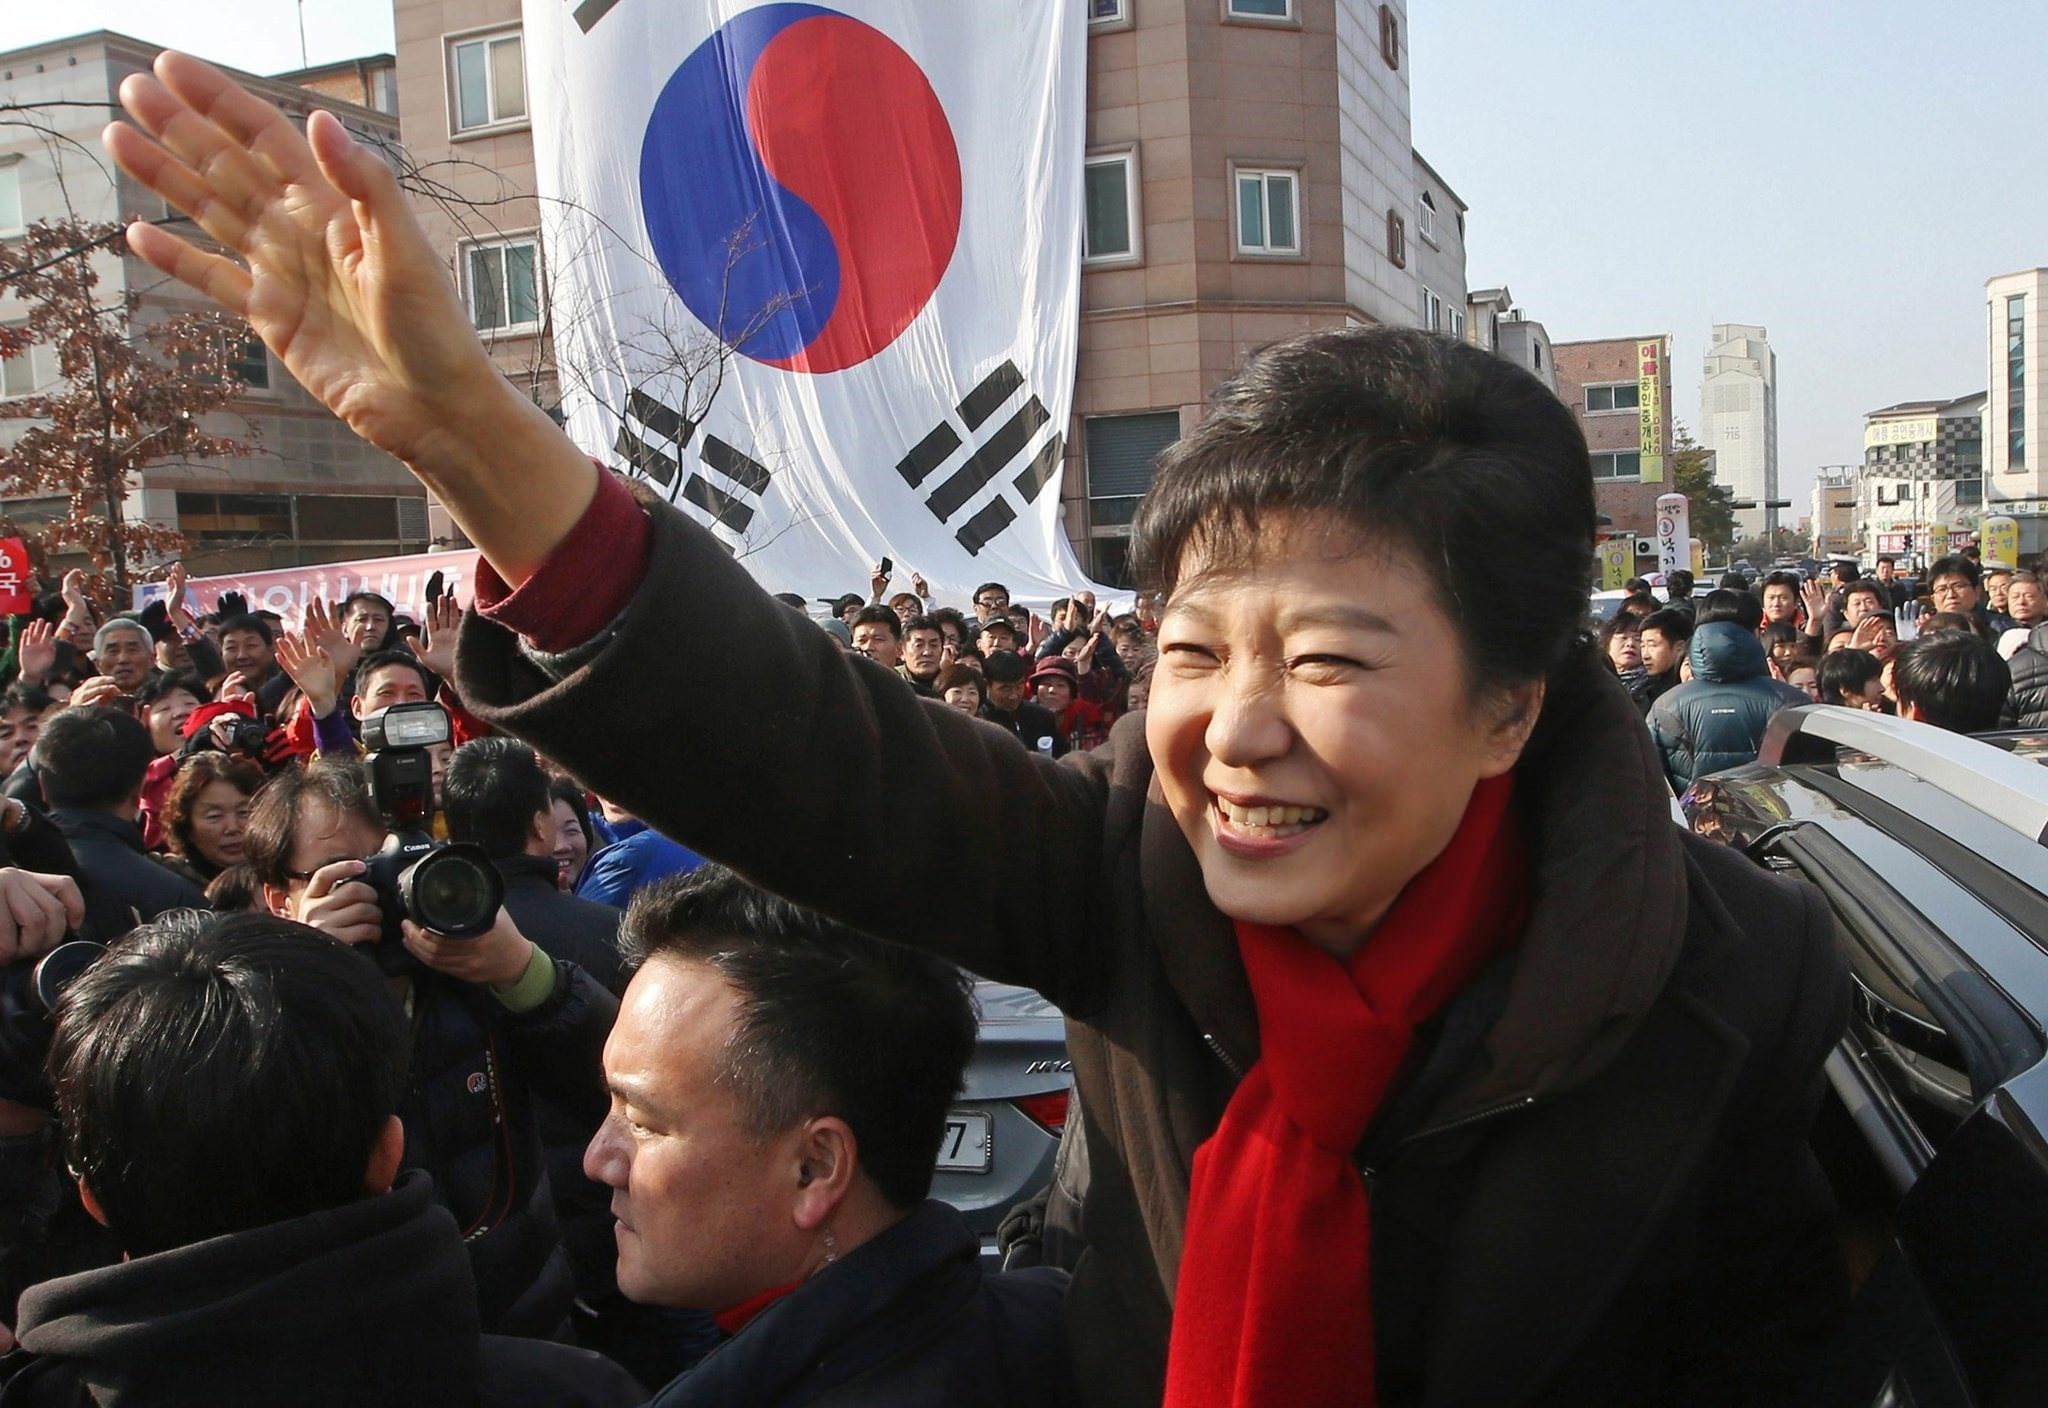 Ex-South Korean president Park Geun-hye waves to supporters during her election campaign rally in Hwaseong, south of Seoul, South Korea, Dec. 17, 2012. (AP Photo)